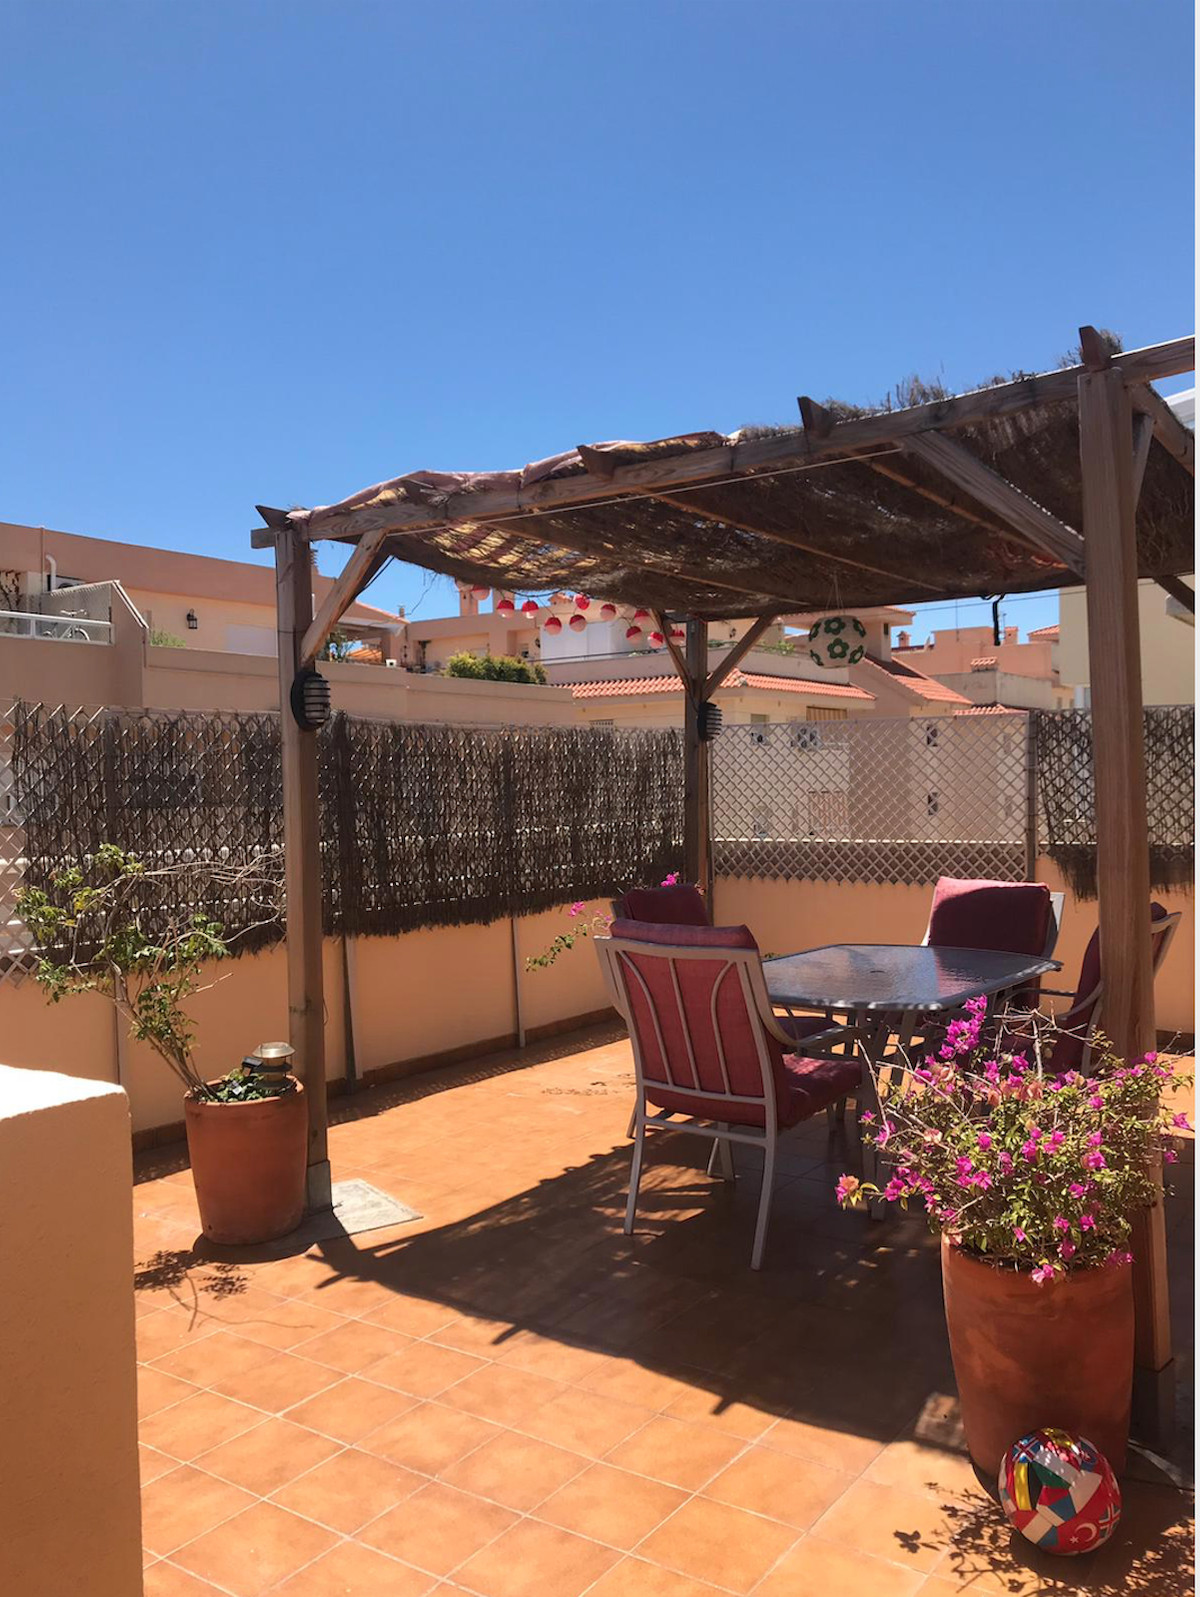 Mijas, Penthouse in the lagoon area, very large terrace in the south and separate room built in wood,Spain